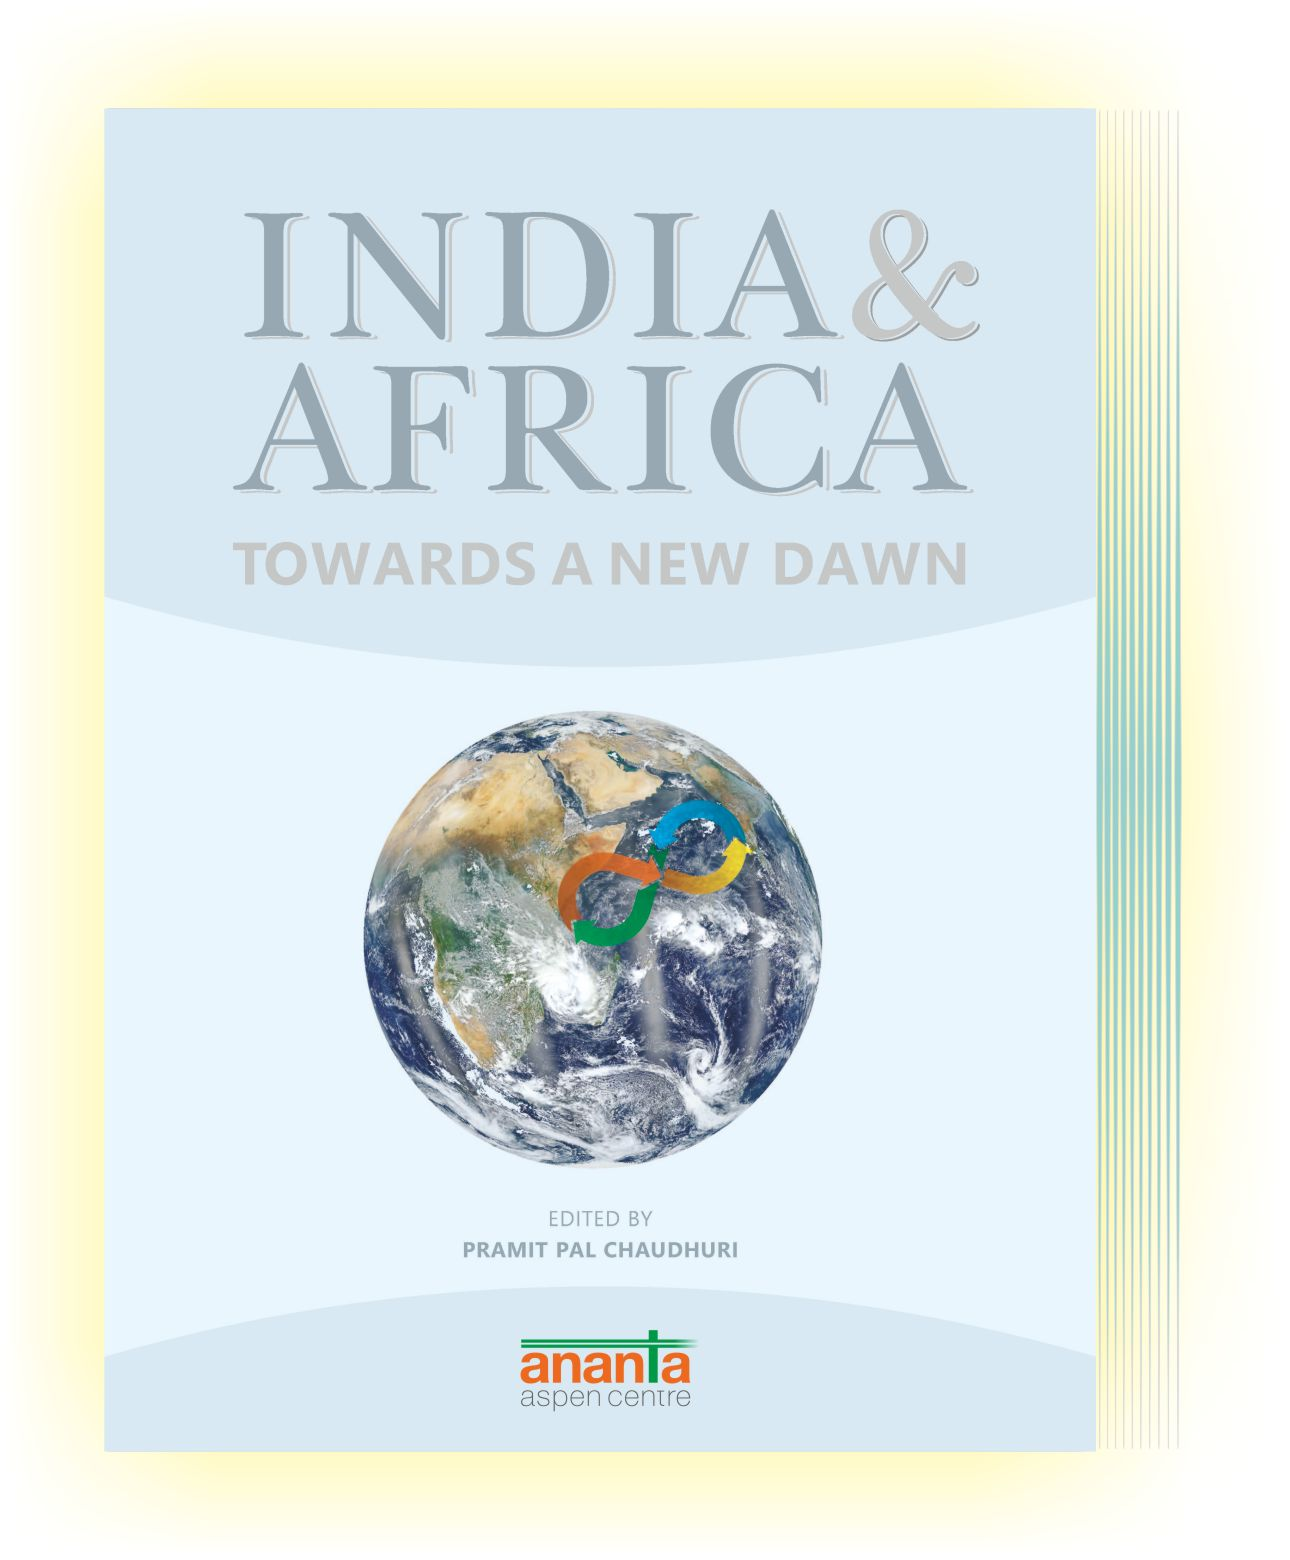 India-Africa Relations Book Cover 27-06-16